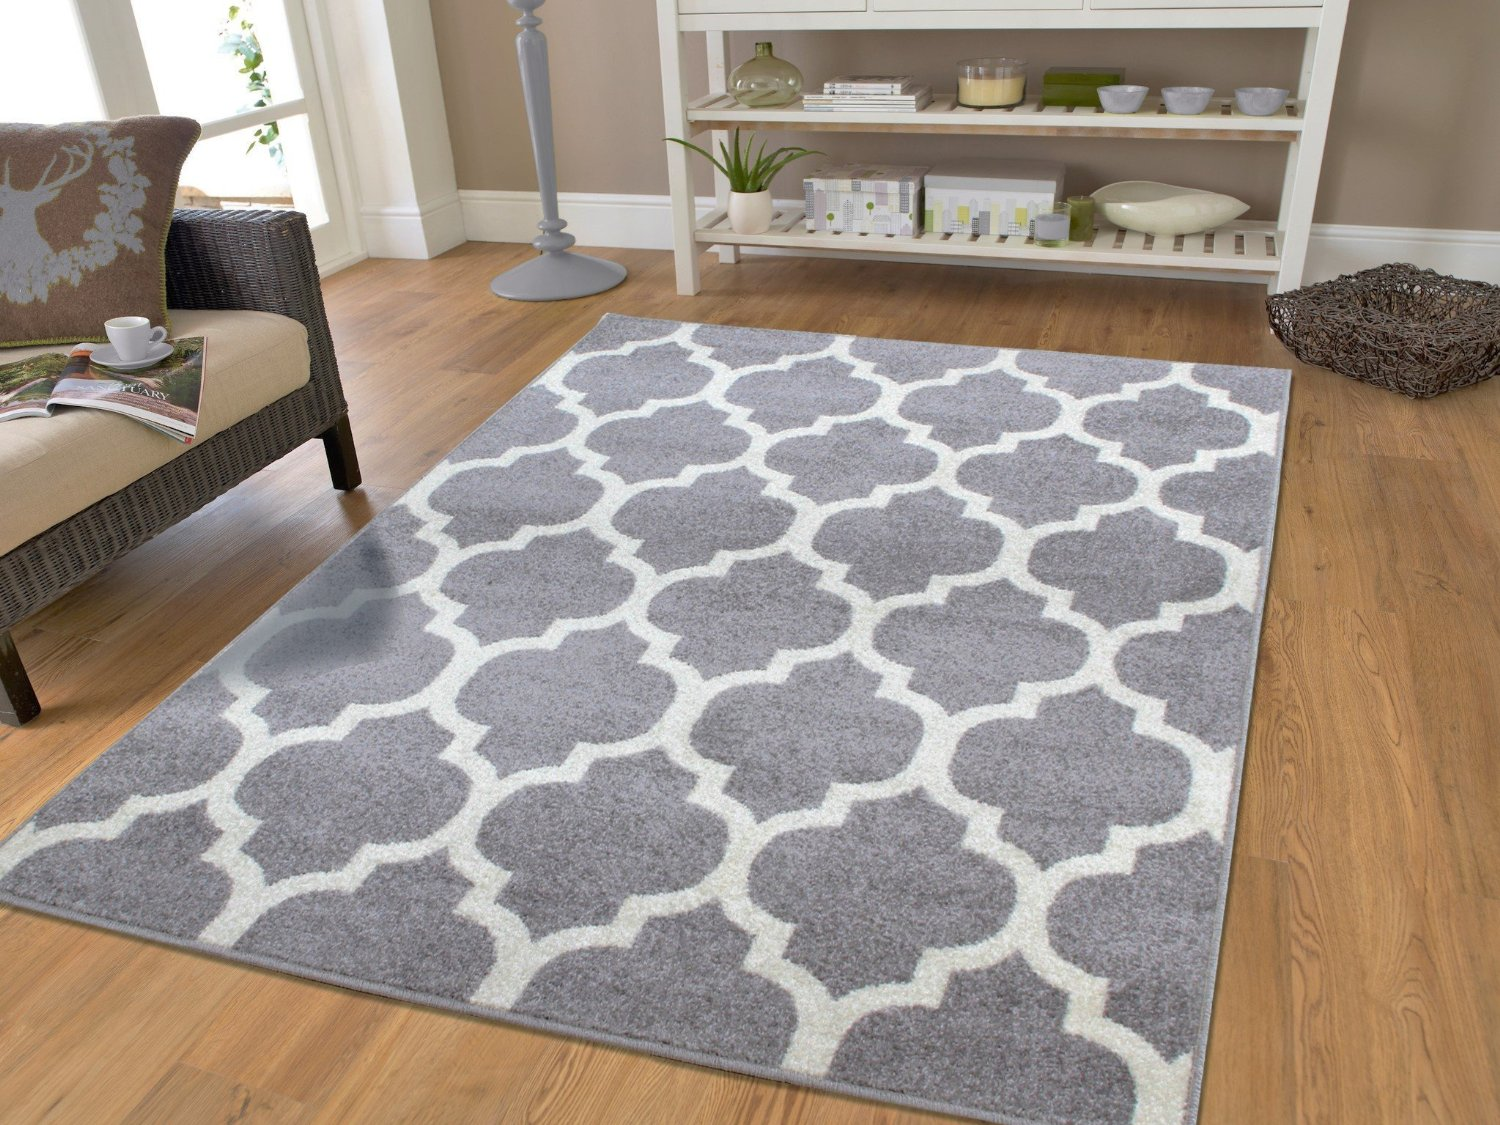 Perfect Fashion Gray Rugs For Bedroom Grey Rugs 5x7 Dining Living Room Rugs For  Under The Table